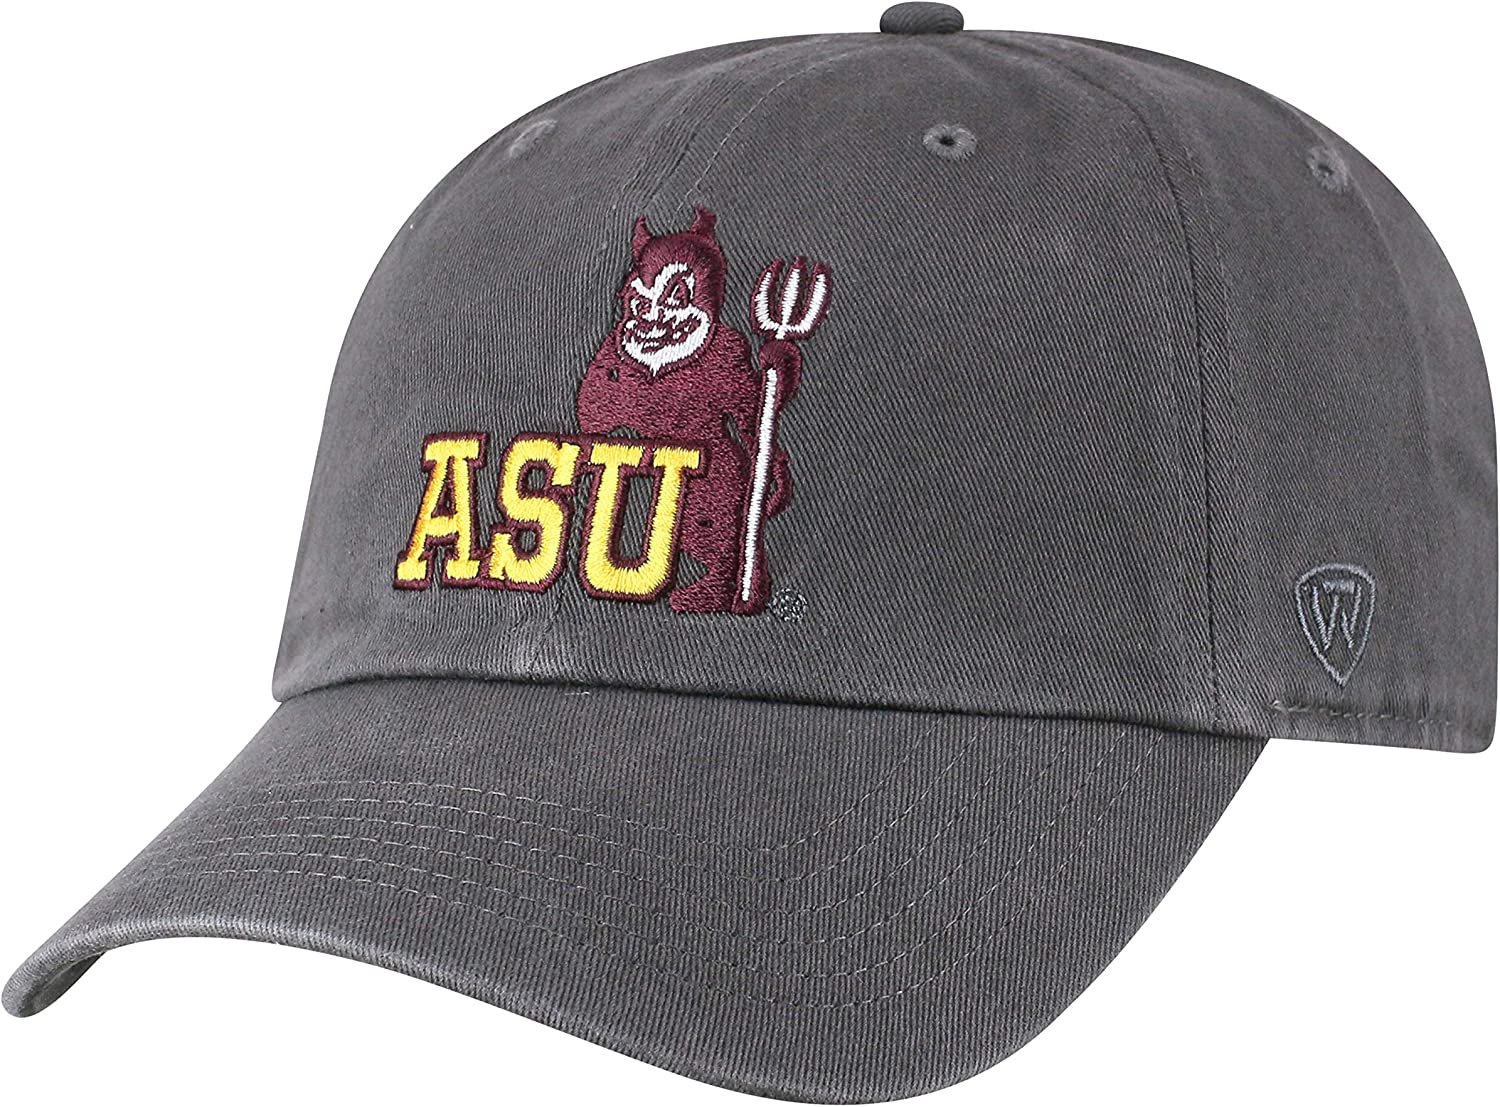 Top of the World NCAA Mens Vintage Hat Adjustable Charcoal Vault Icon